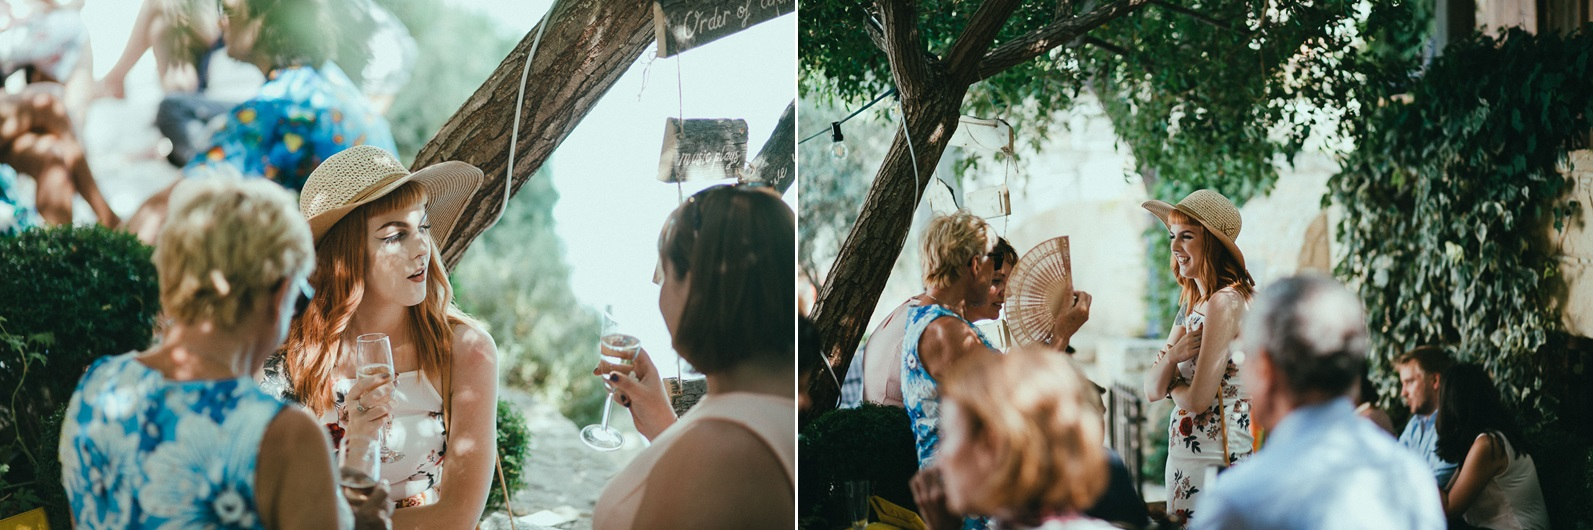 cyprus-wedding-photographer89.jpg